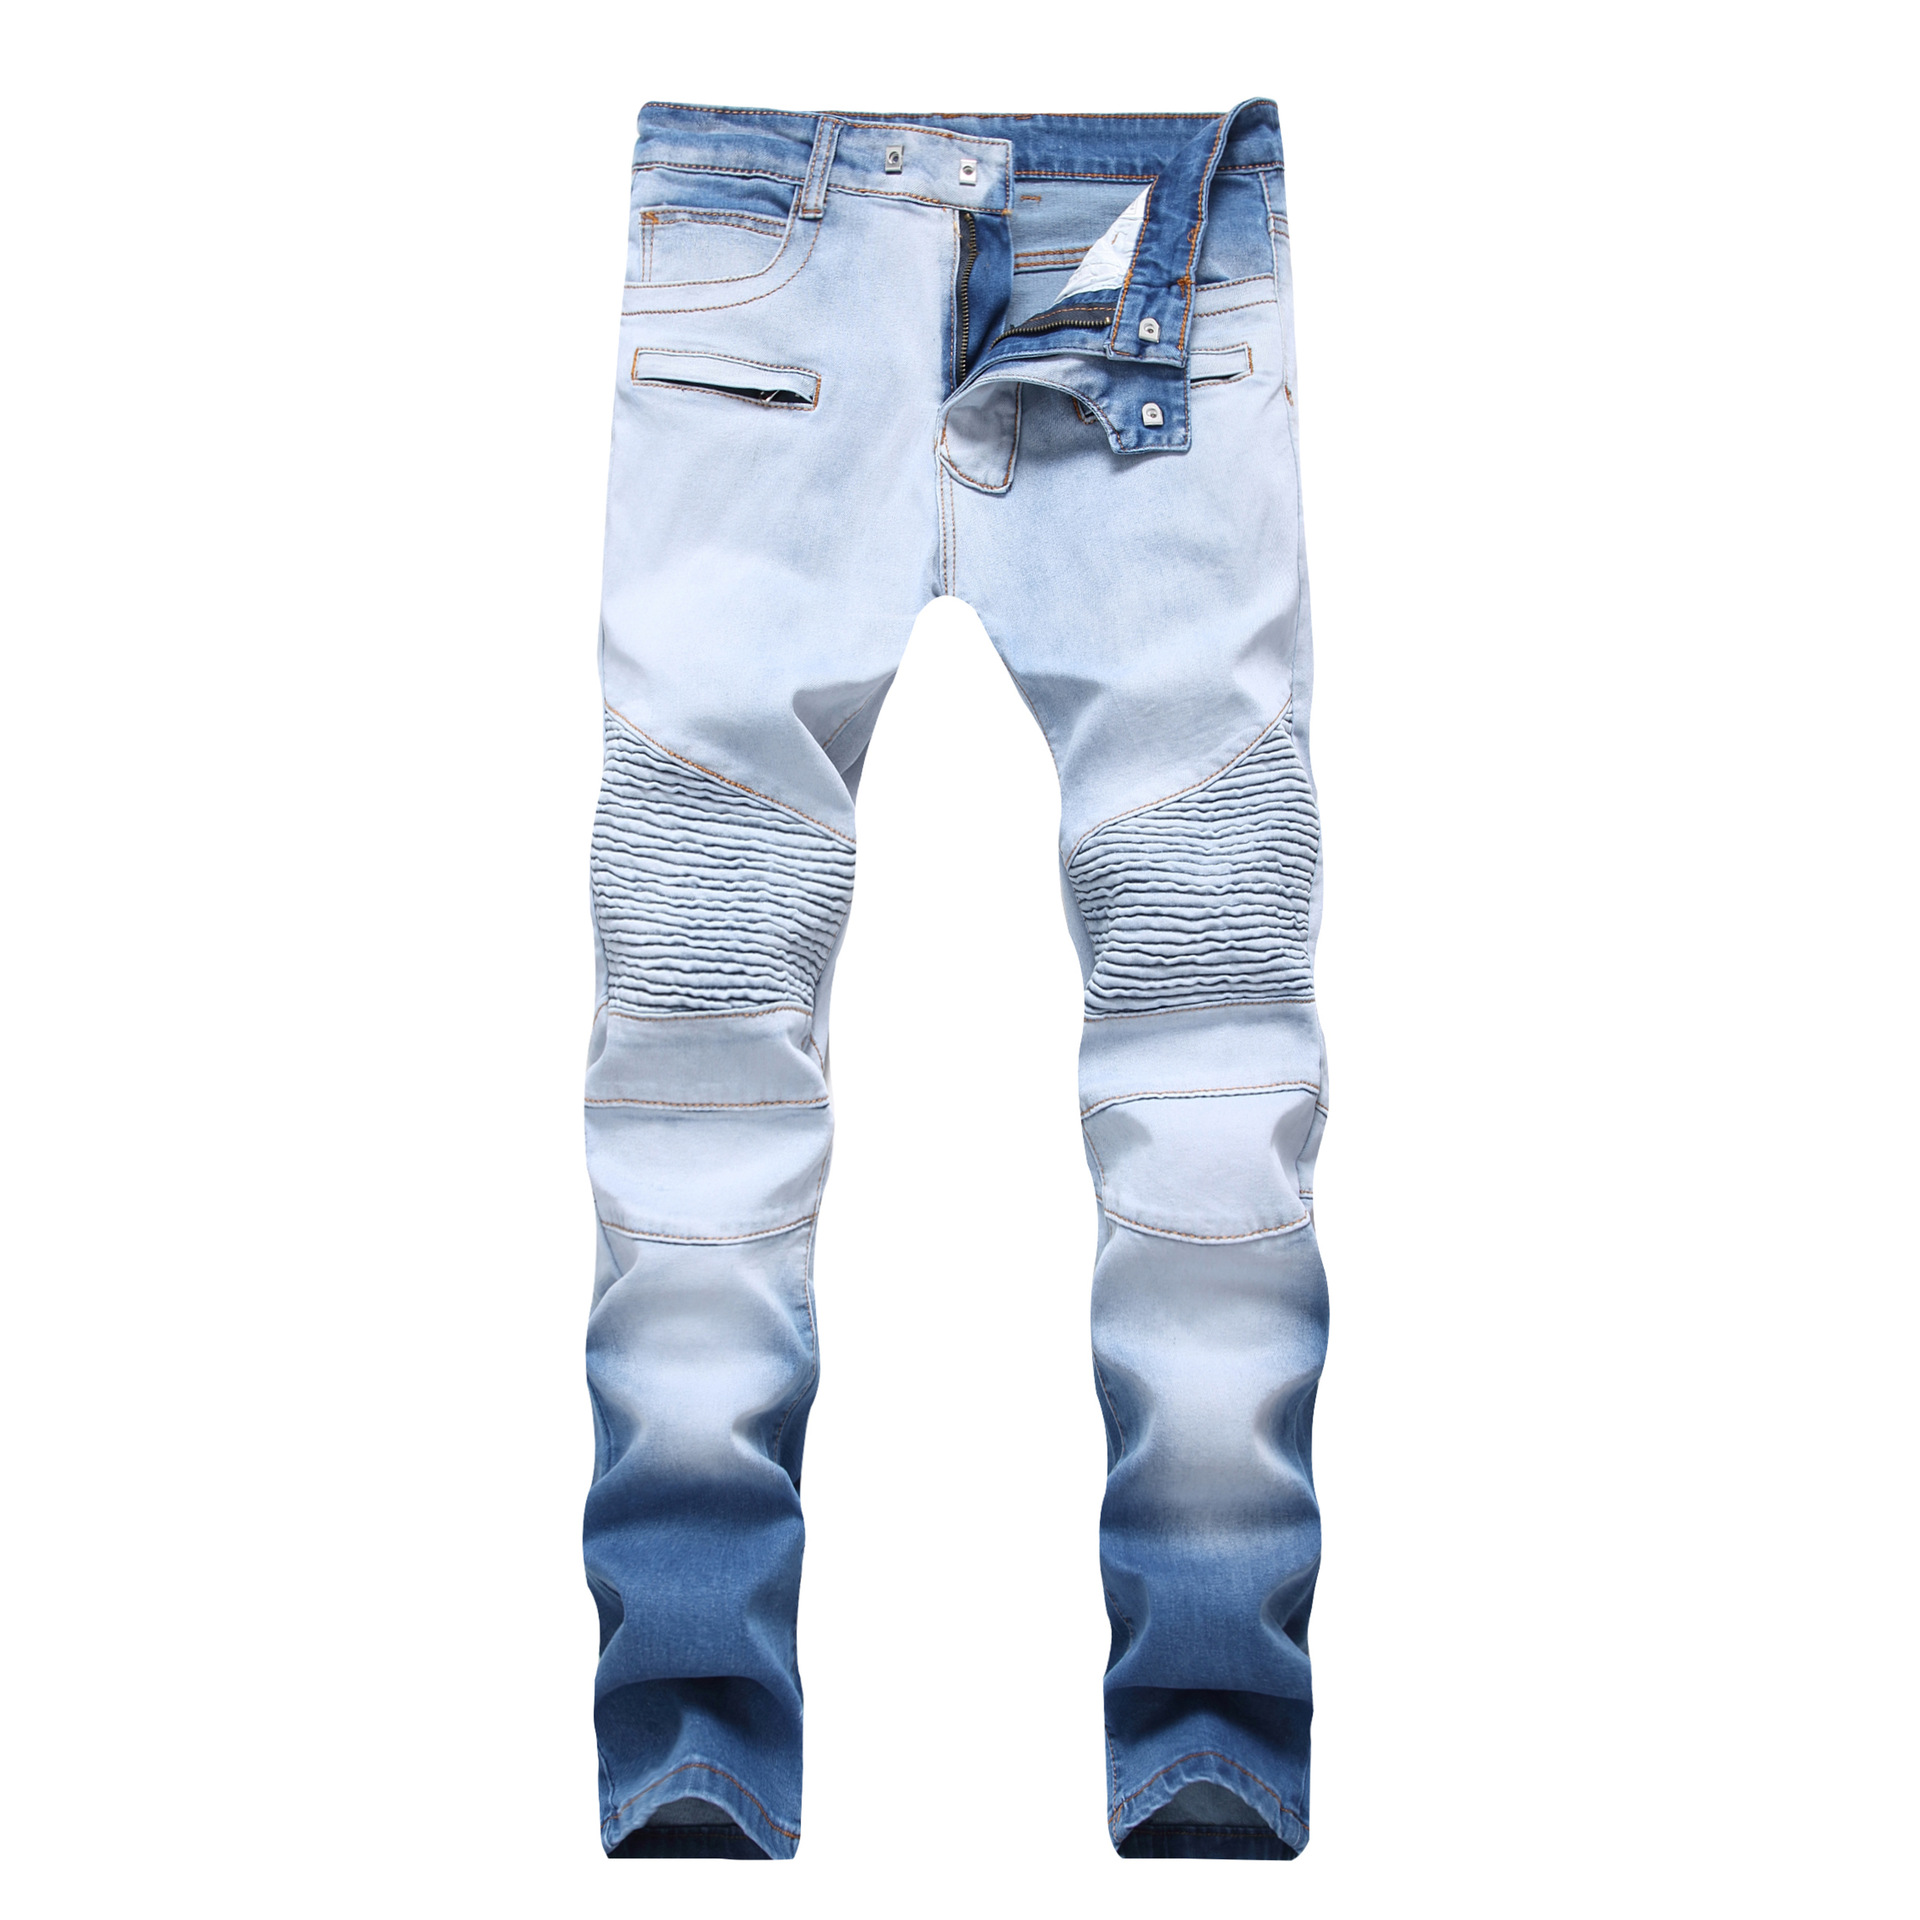 MEN'S WEAR North America High Street Slim Fit Elasticity On Color Changing Jeans Da Tiao Zipper Double Color Faded Trousers